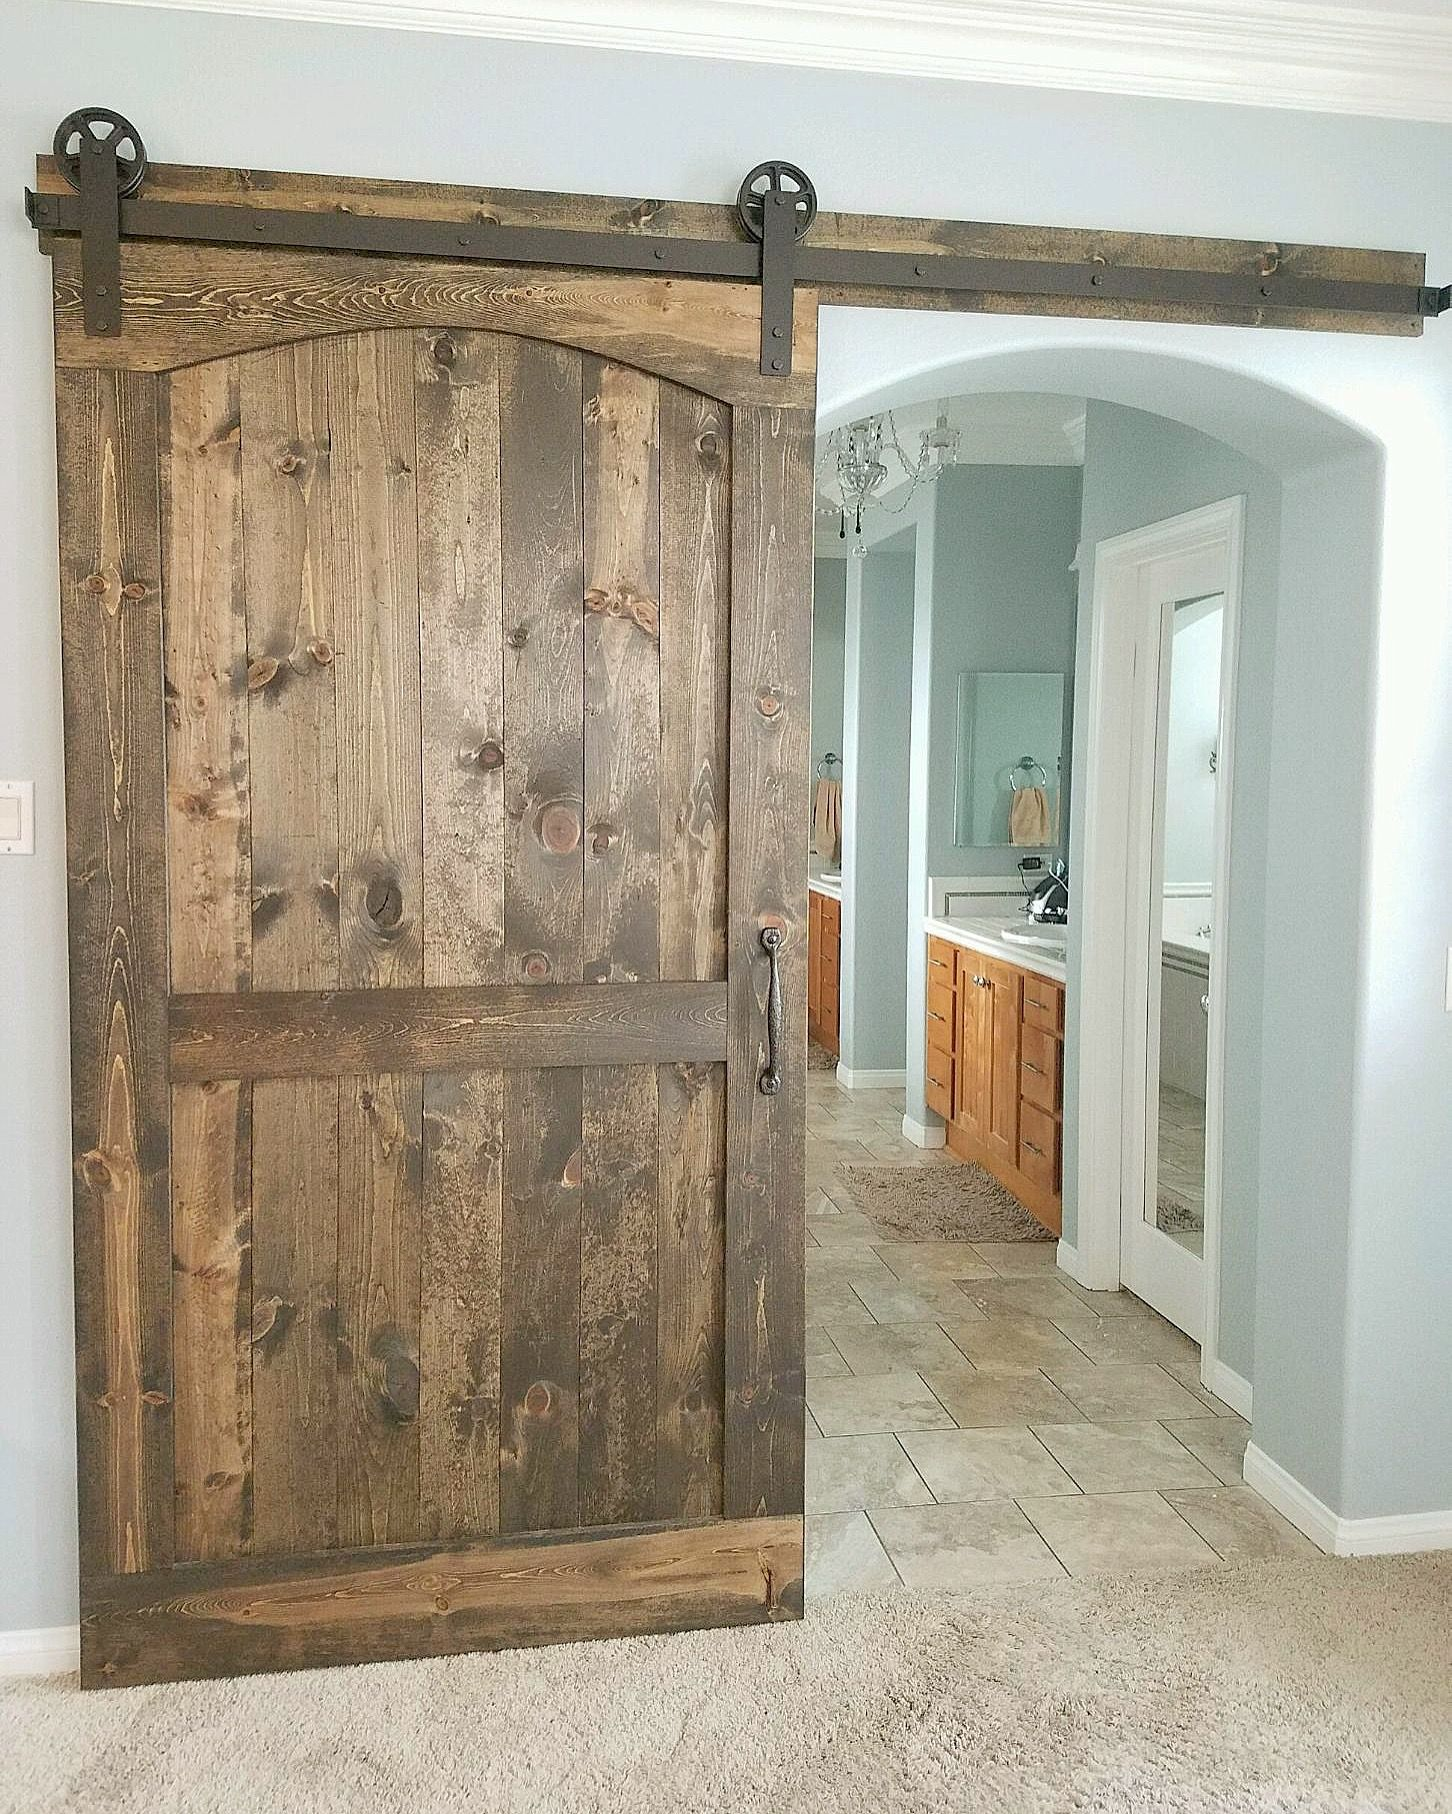 Arched Barn Door With Hardware For A Master Bedroom Bathroom